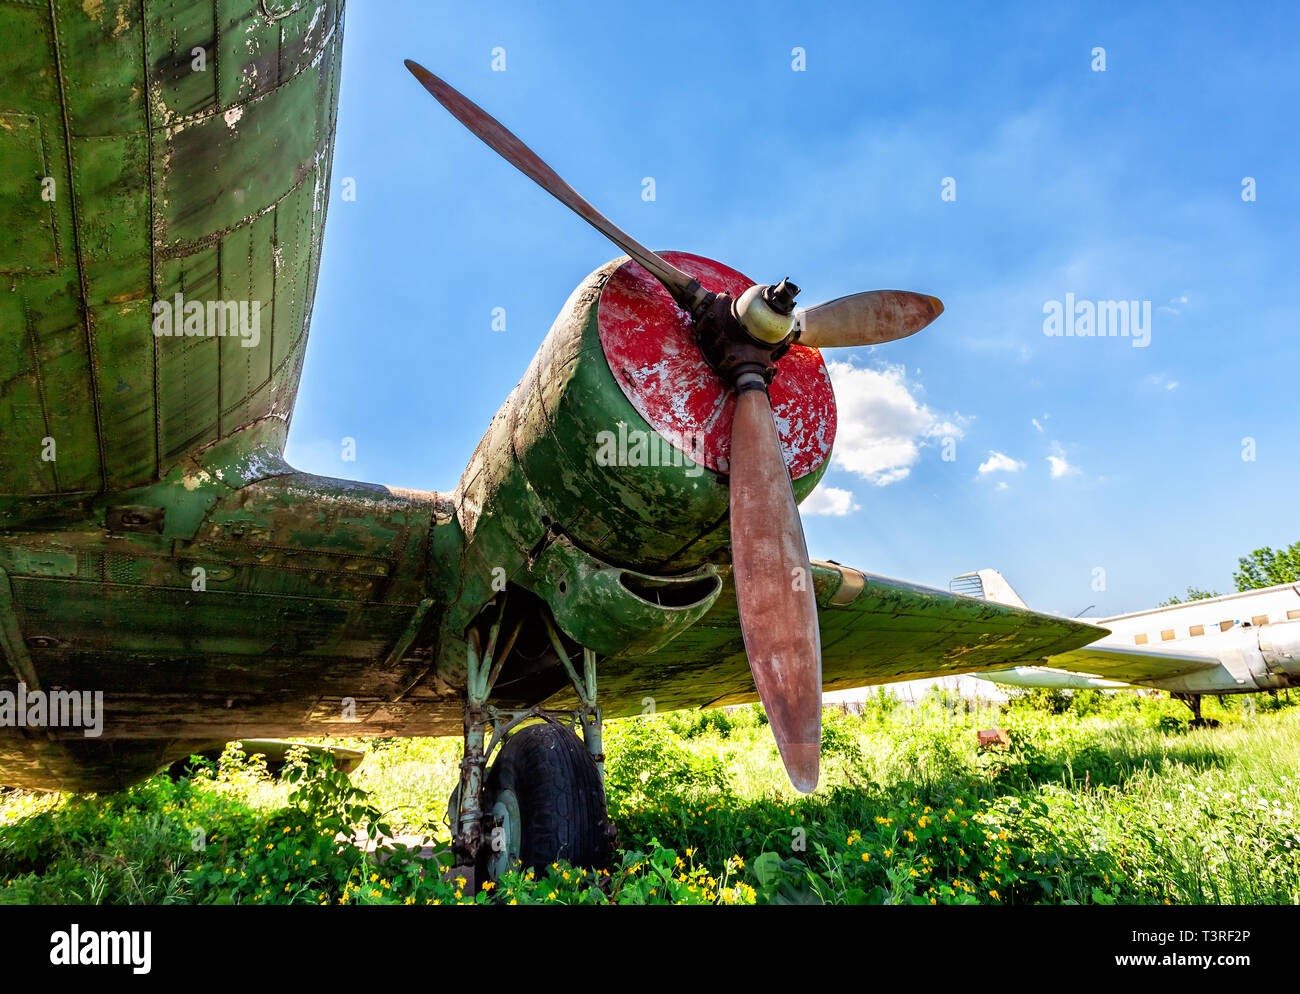 Turbine of an old russian turboprop aircraft at the abandoned aerodrome in summertime - Stock Image